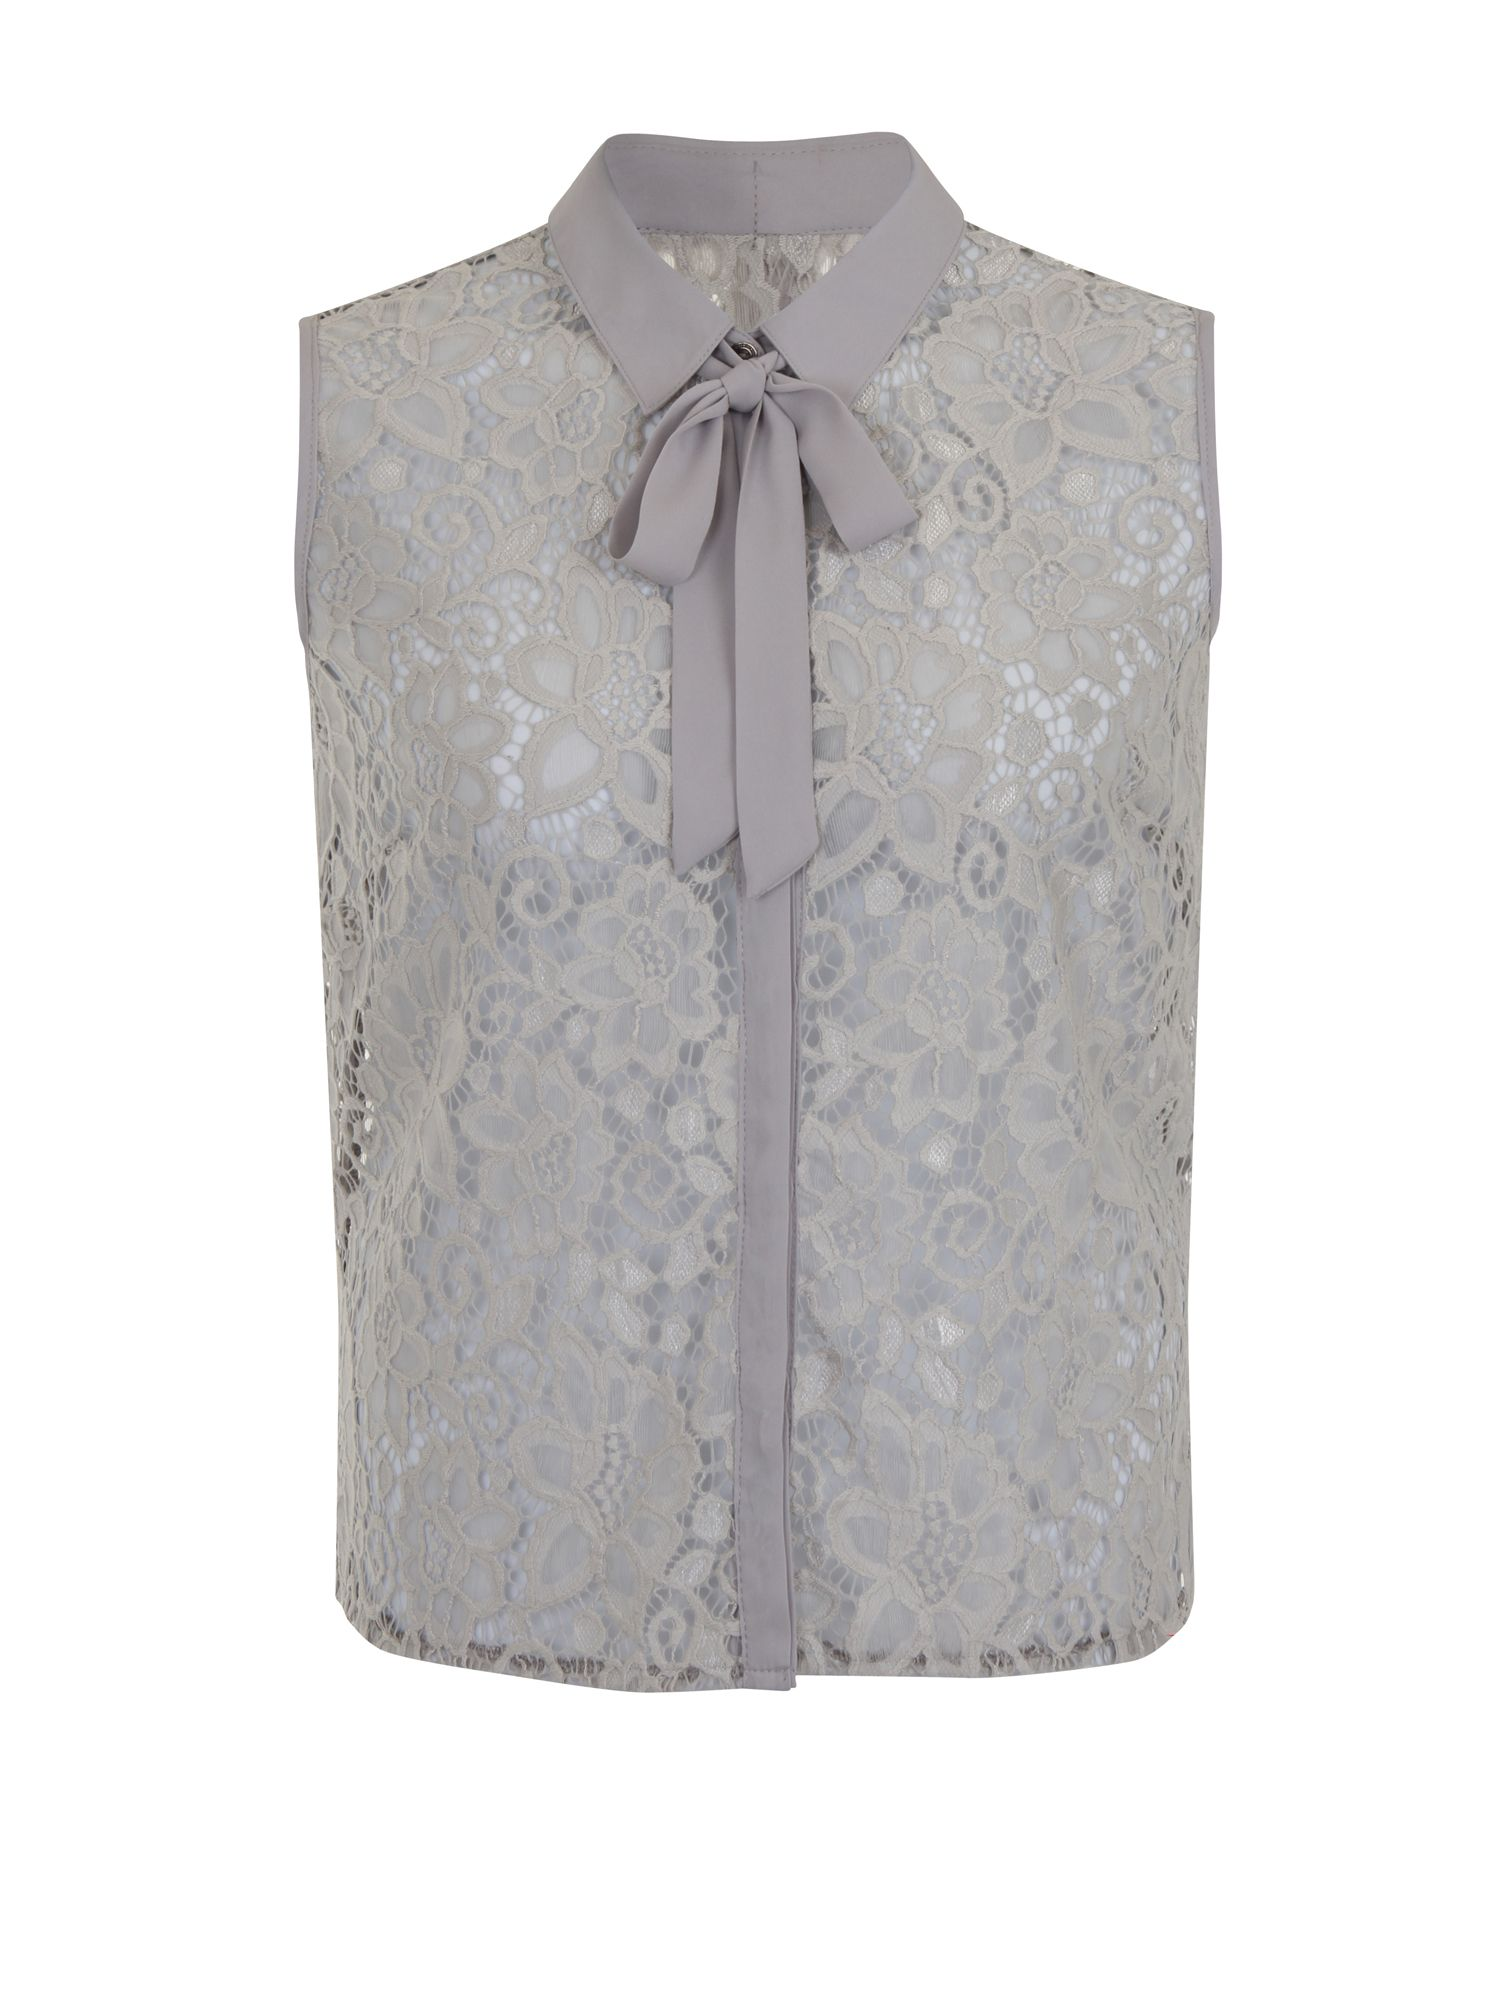 Shop 1960s Style Blouses, Shirts and Tops Elvi Plus Size Grey Lace Pussy Bow Top £39.20 AT vintagedancer.com